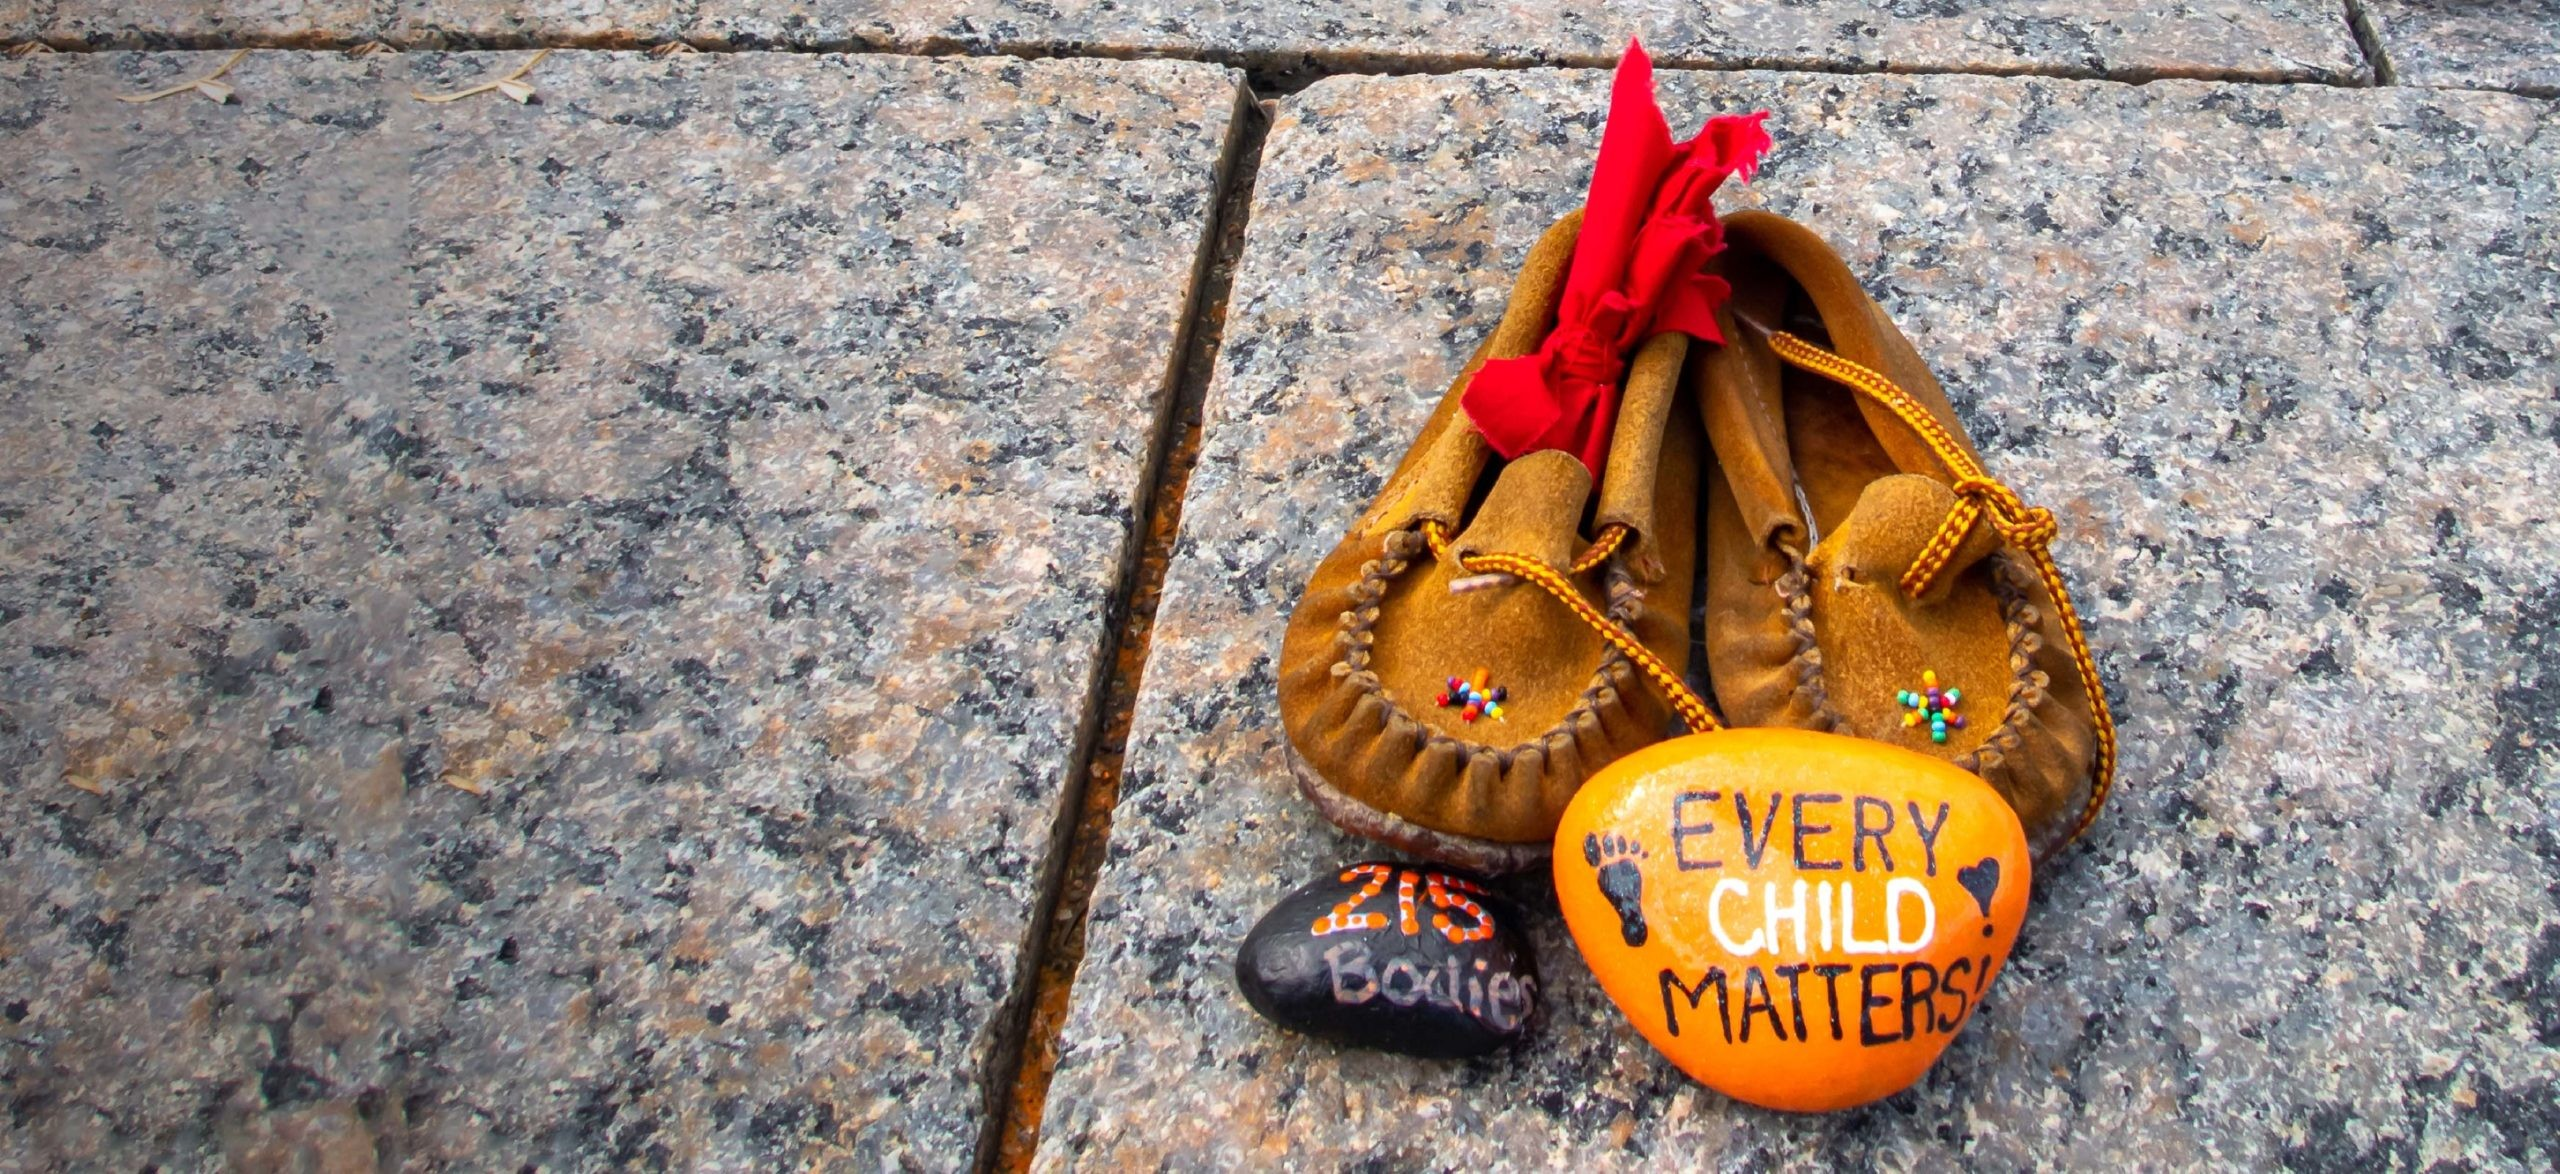 """Children's shoes and a painted orange rock that reads """"Every Child Matters"""" site at a memorial at Canada's Parliament Hill for Indigenous children who were sent to residential schools"""